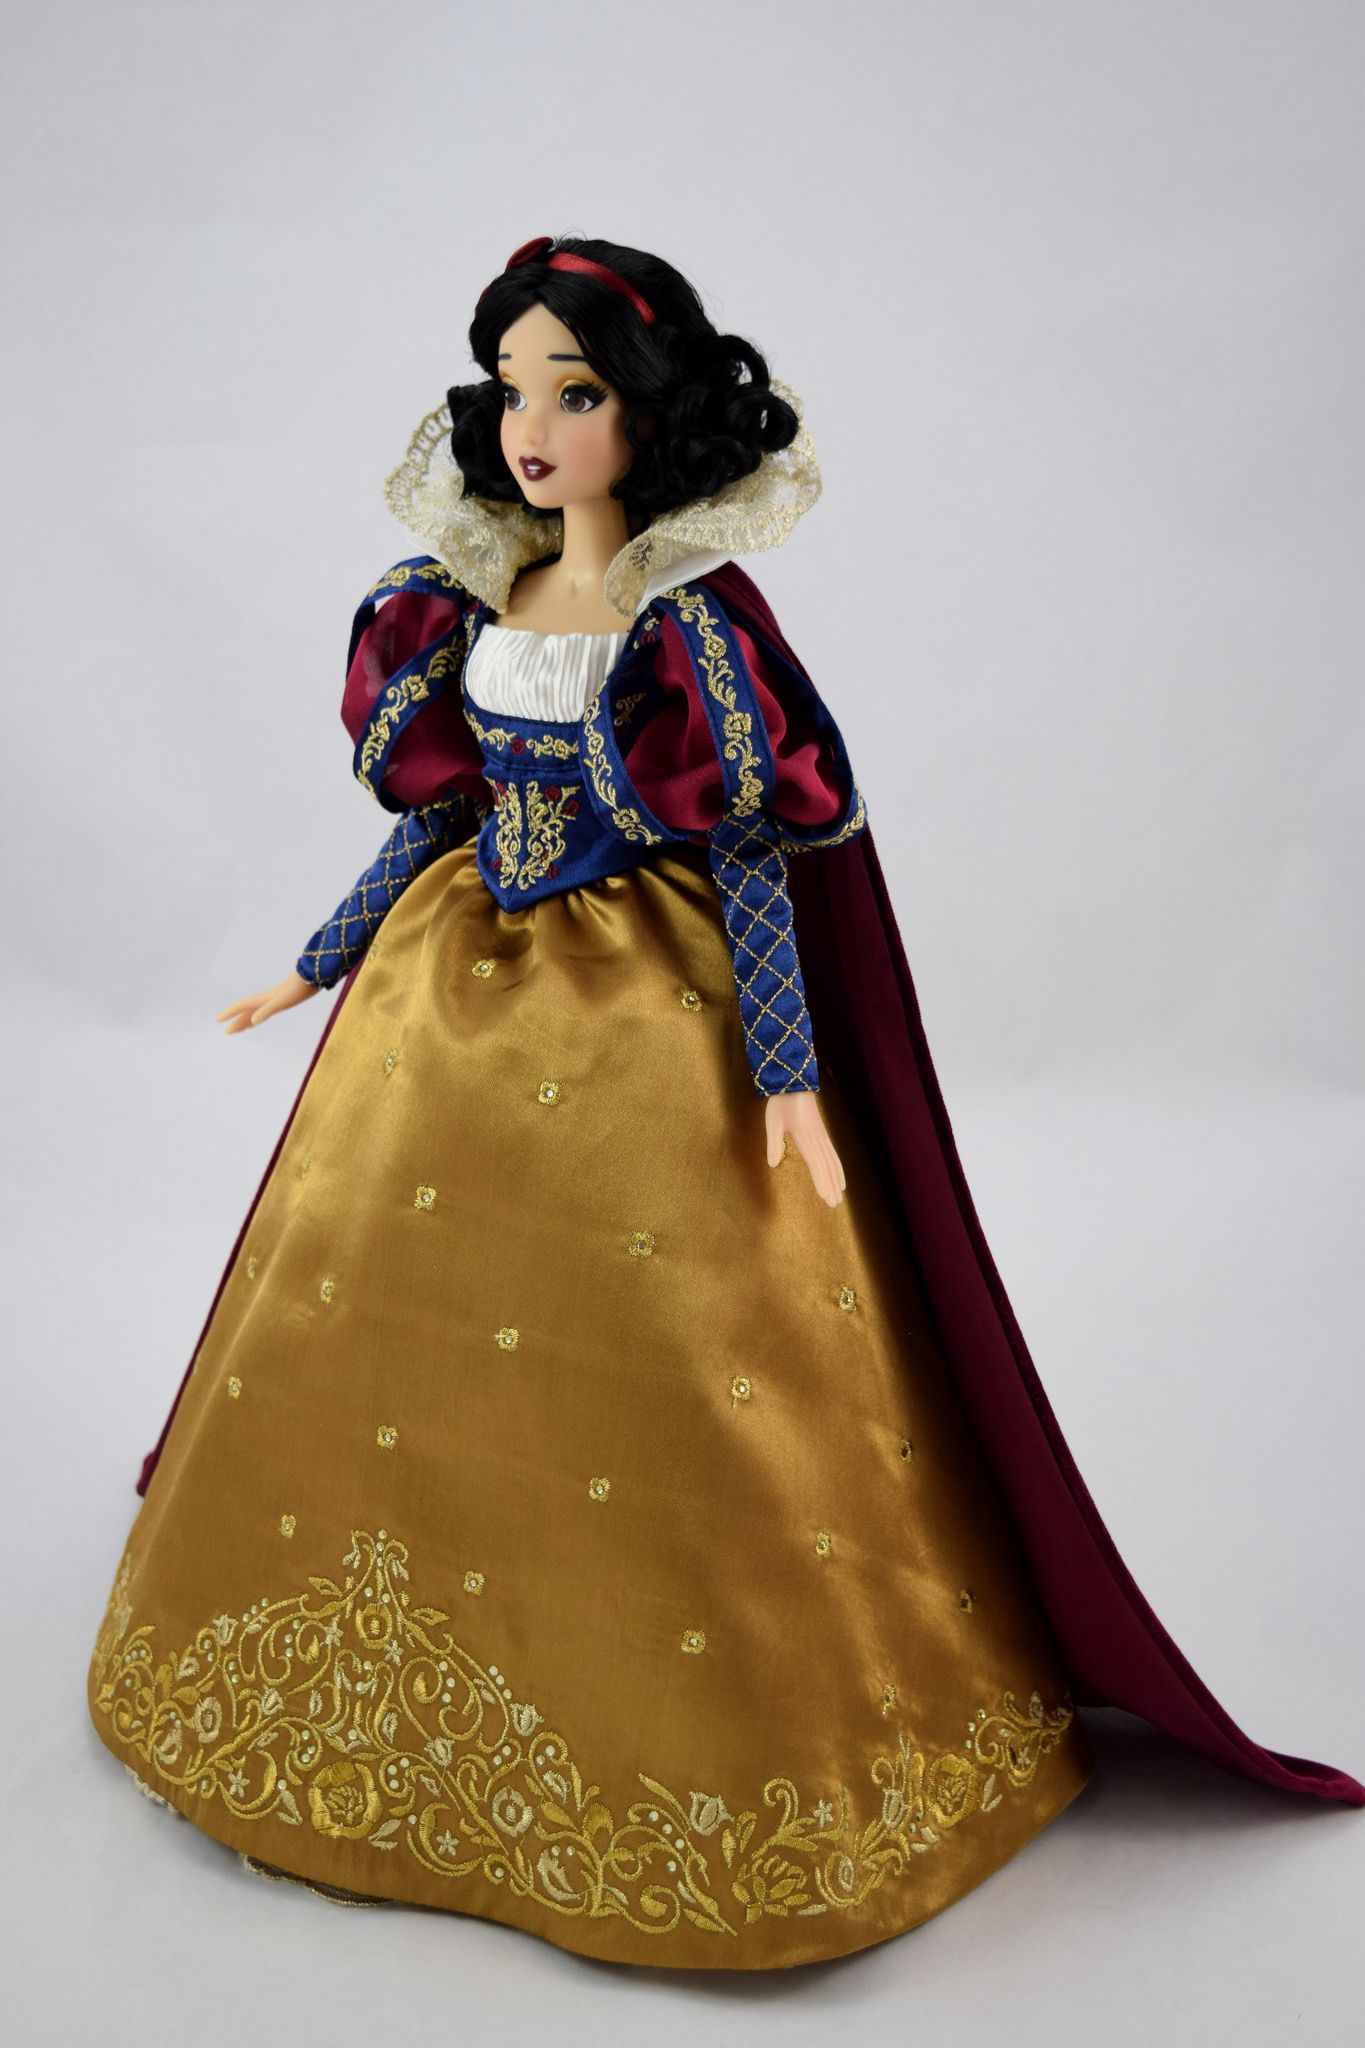 2017 D23 Snow White Limited Edition 17 Inch Doll Disney Photo By